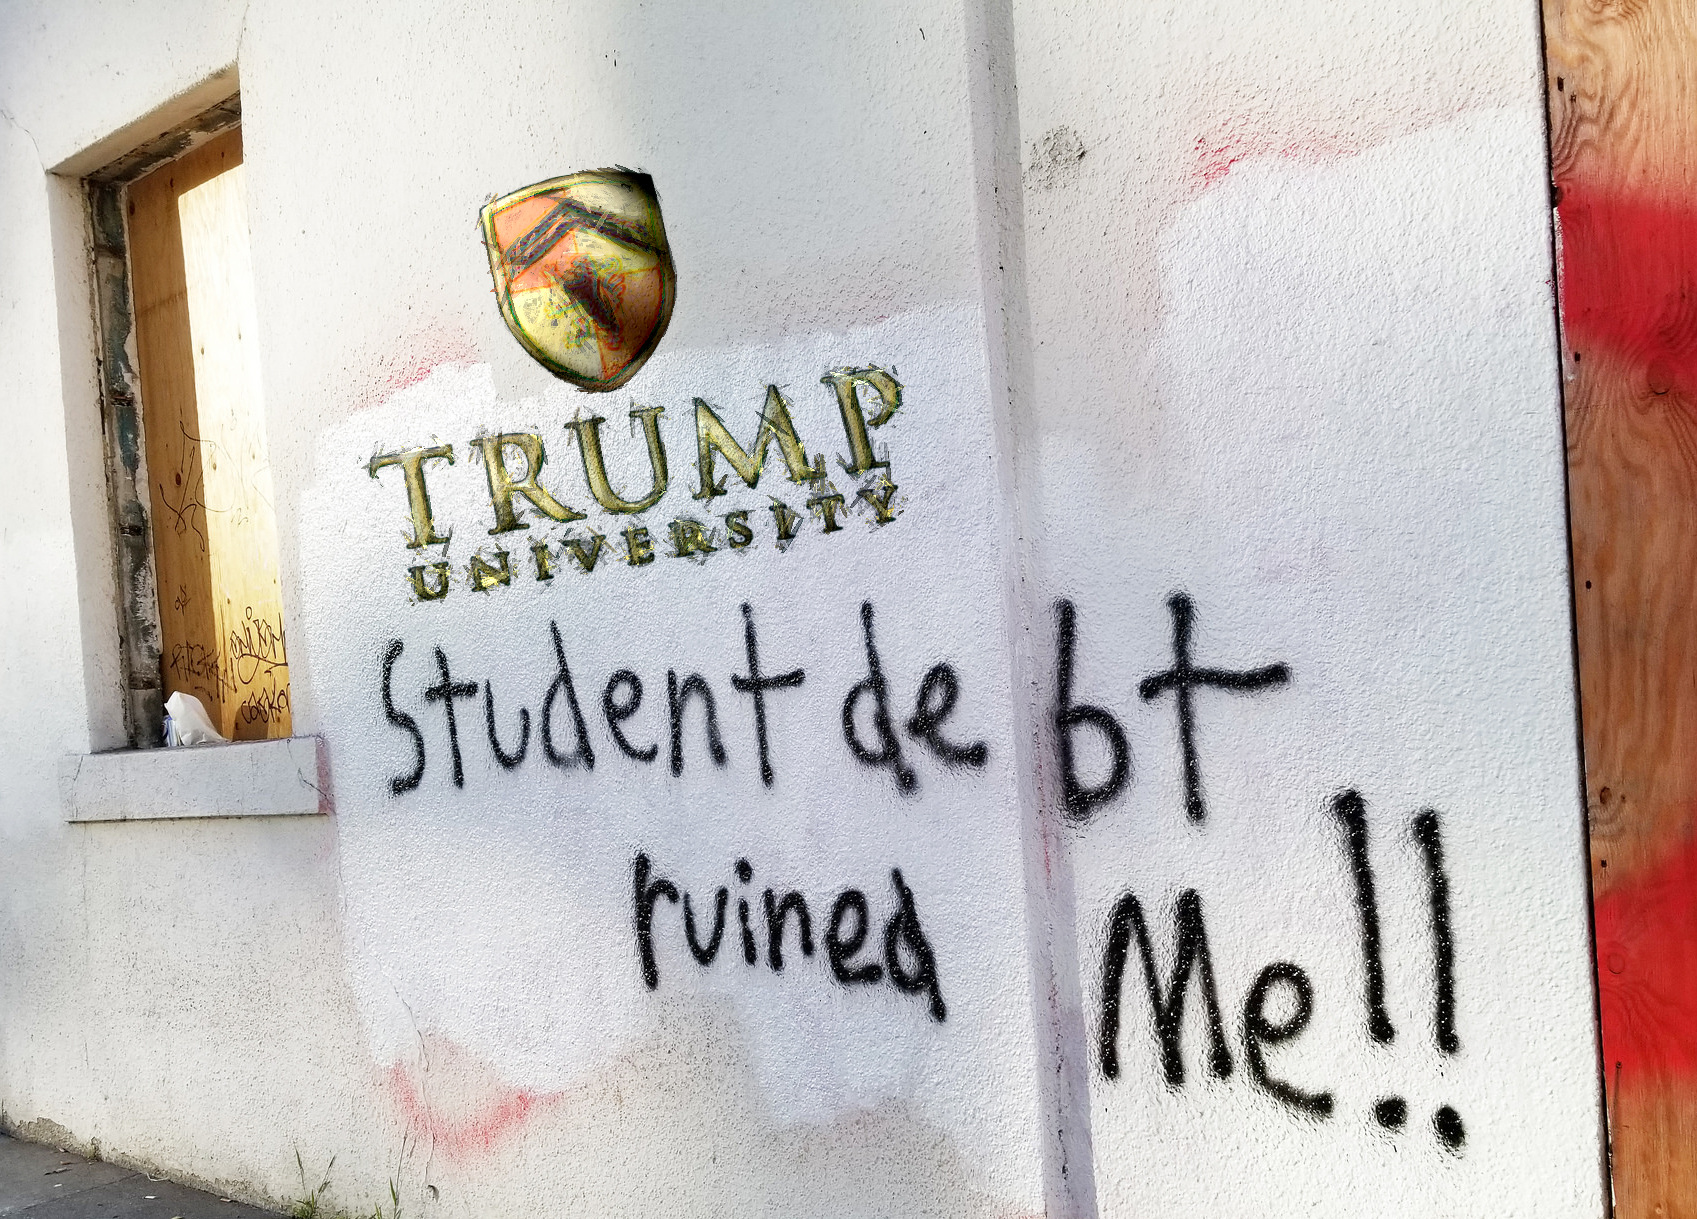 Independent auditor: Trump has made it impossible for students defrauded by predatory diploma mills to get...